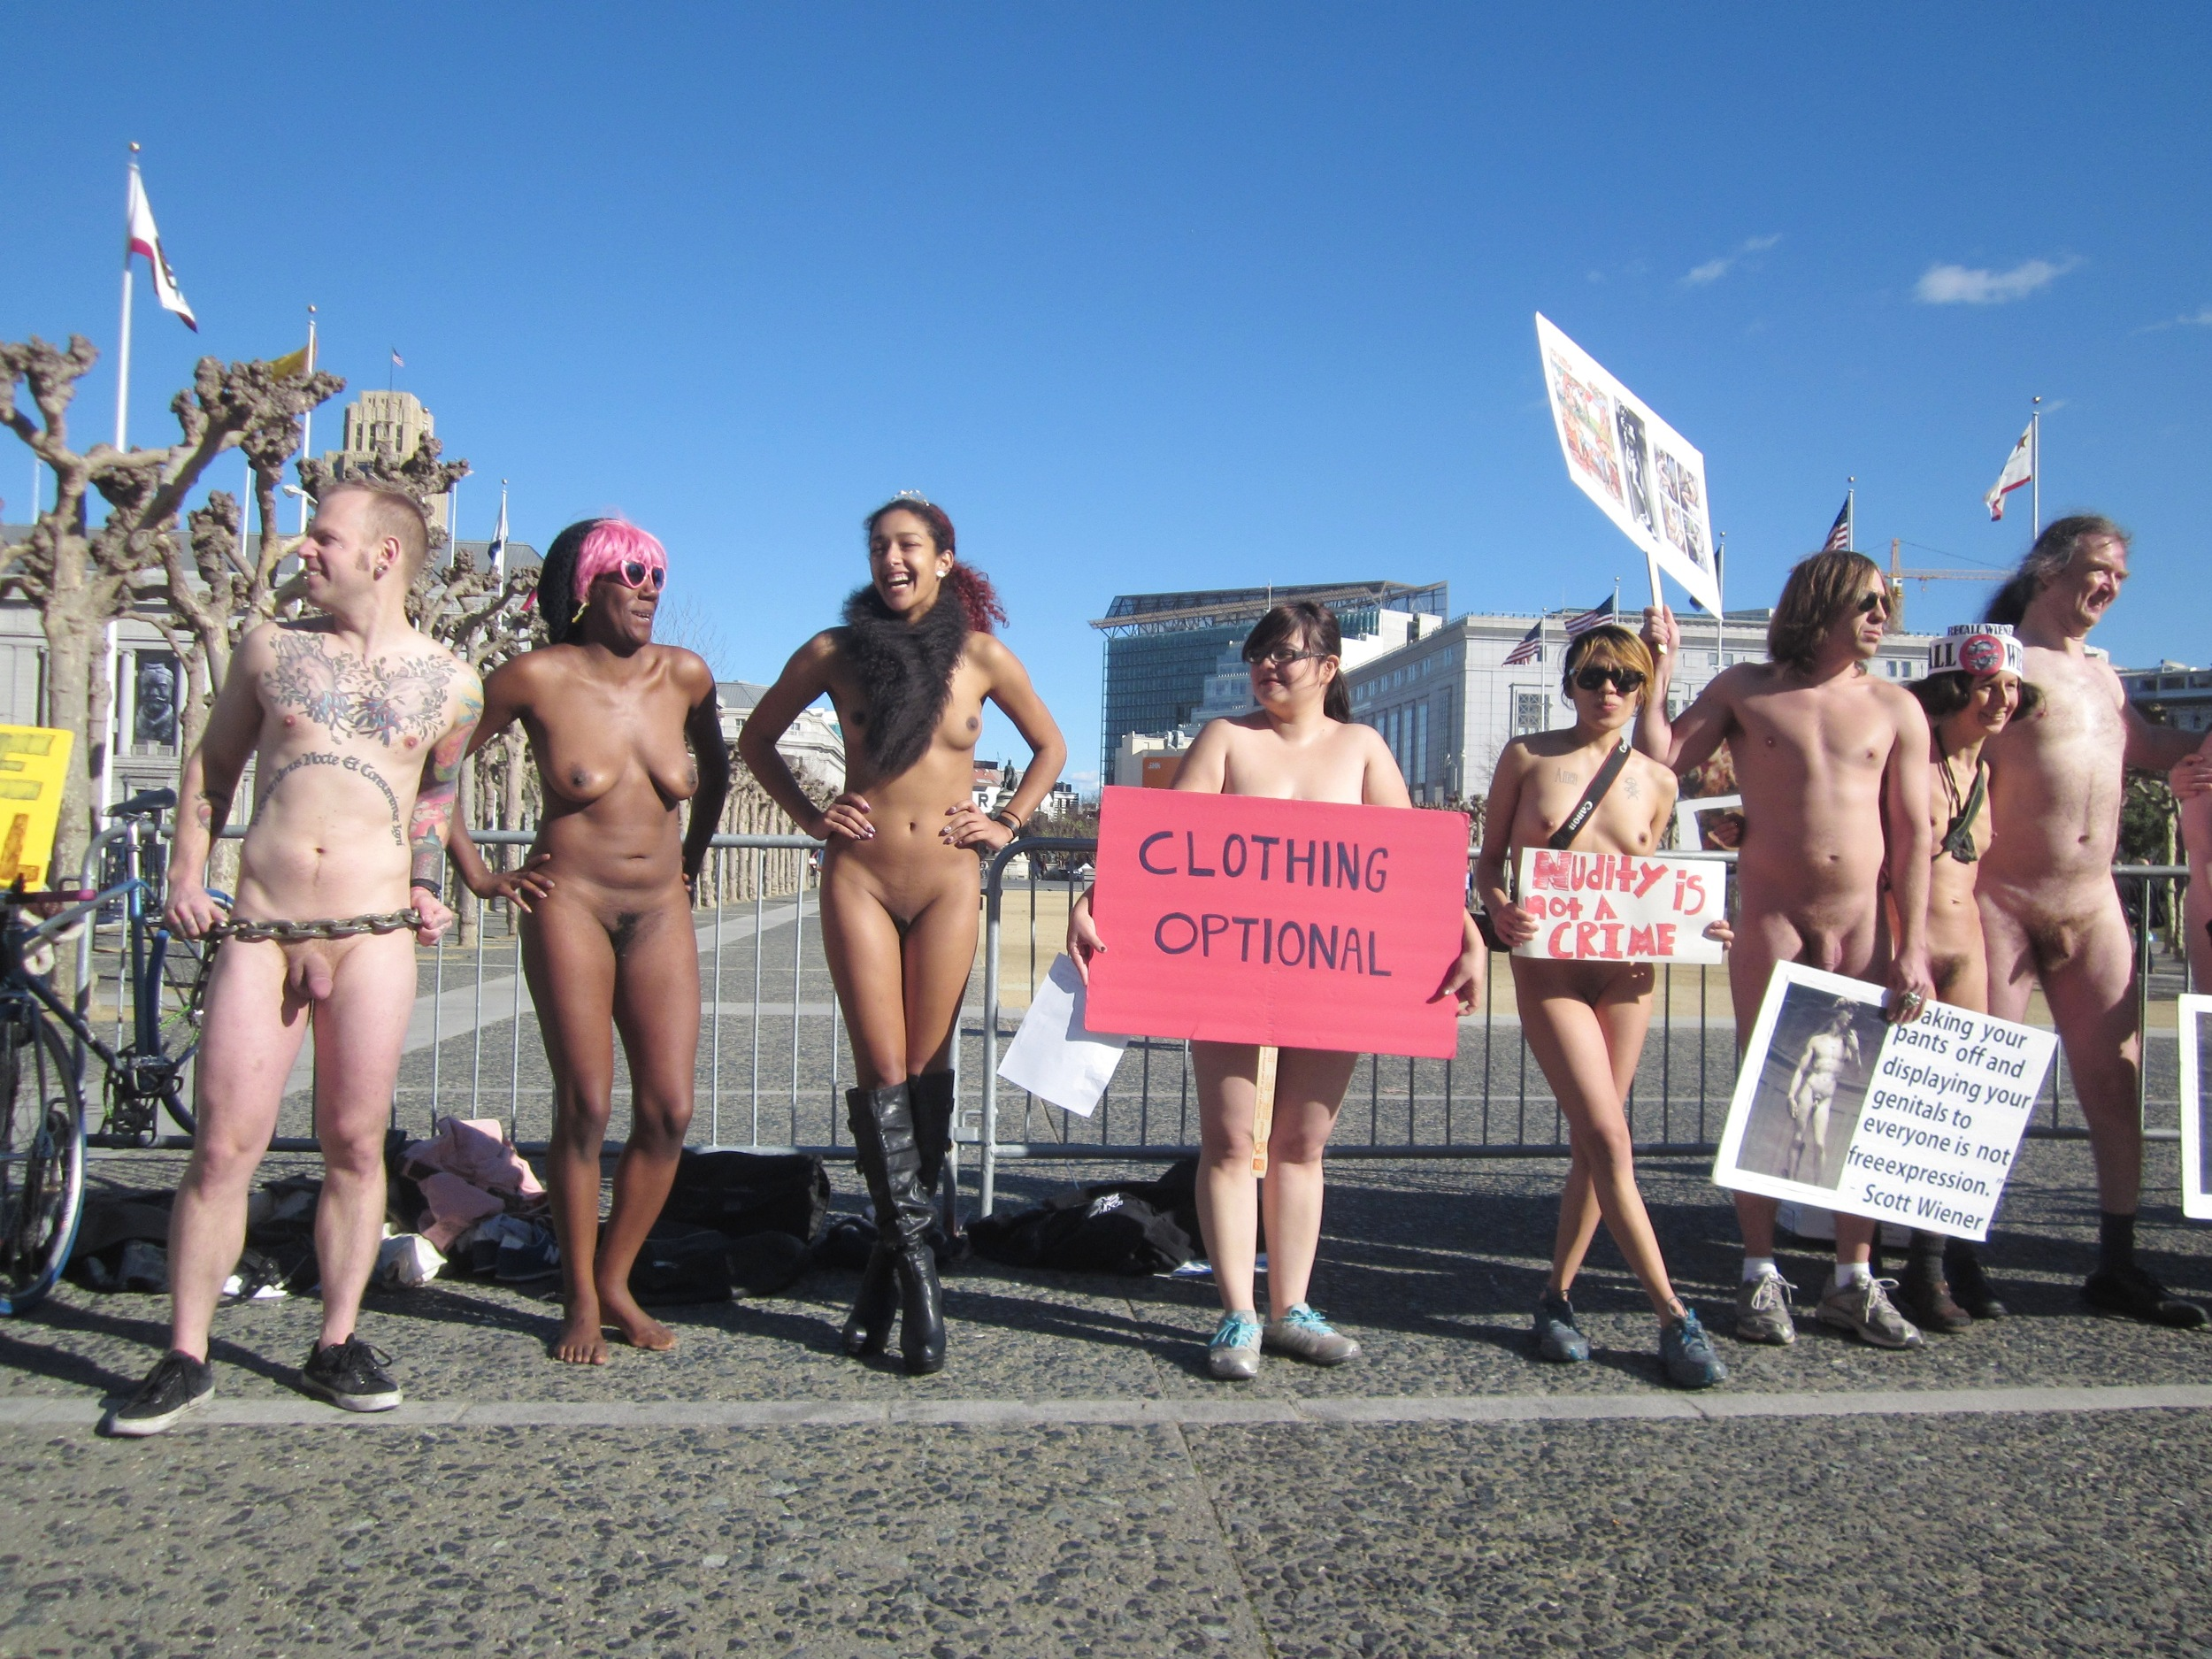 http://upload.wikimedia.org/wikipedia/commons/5/50/SF_Nude_Ban_Protest_IMG_3816.jpg